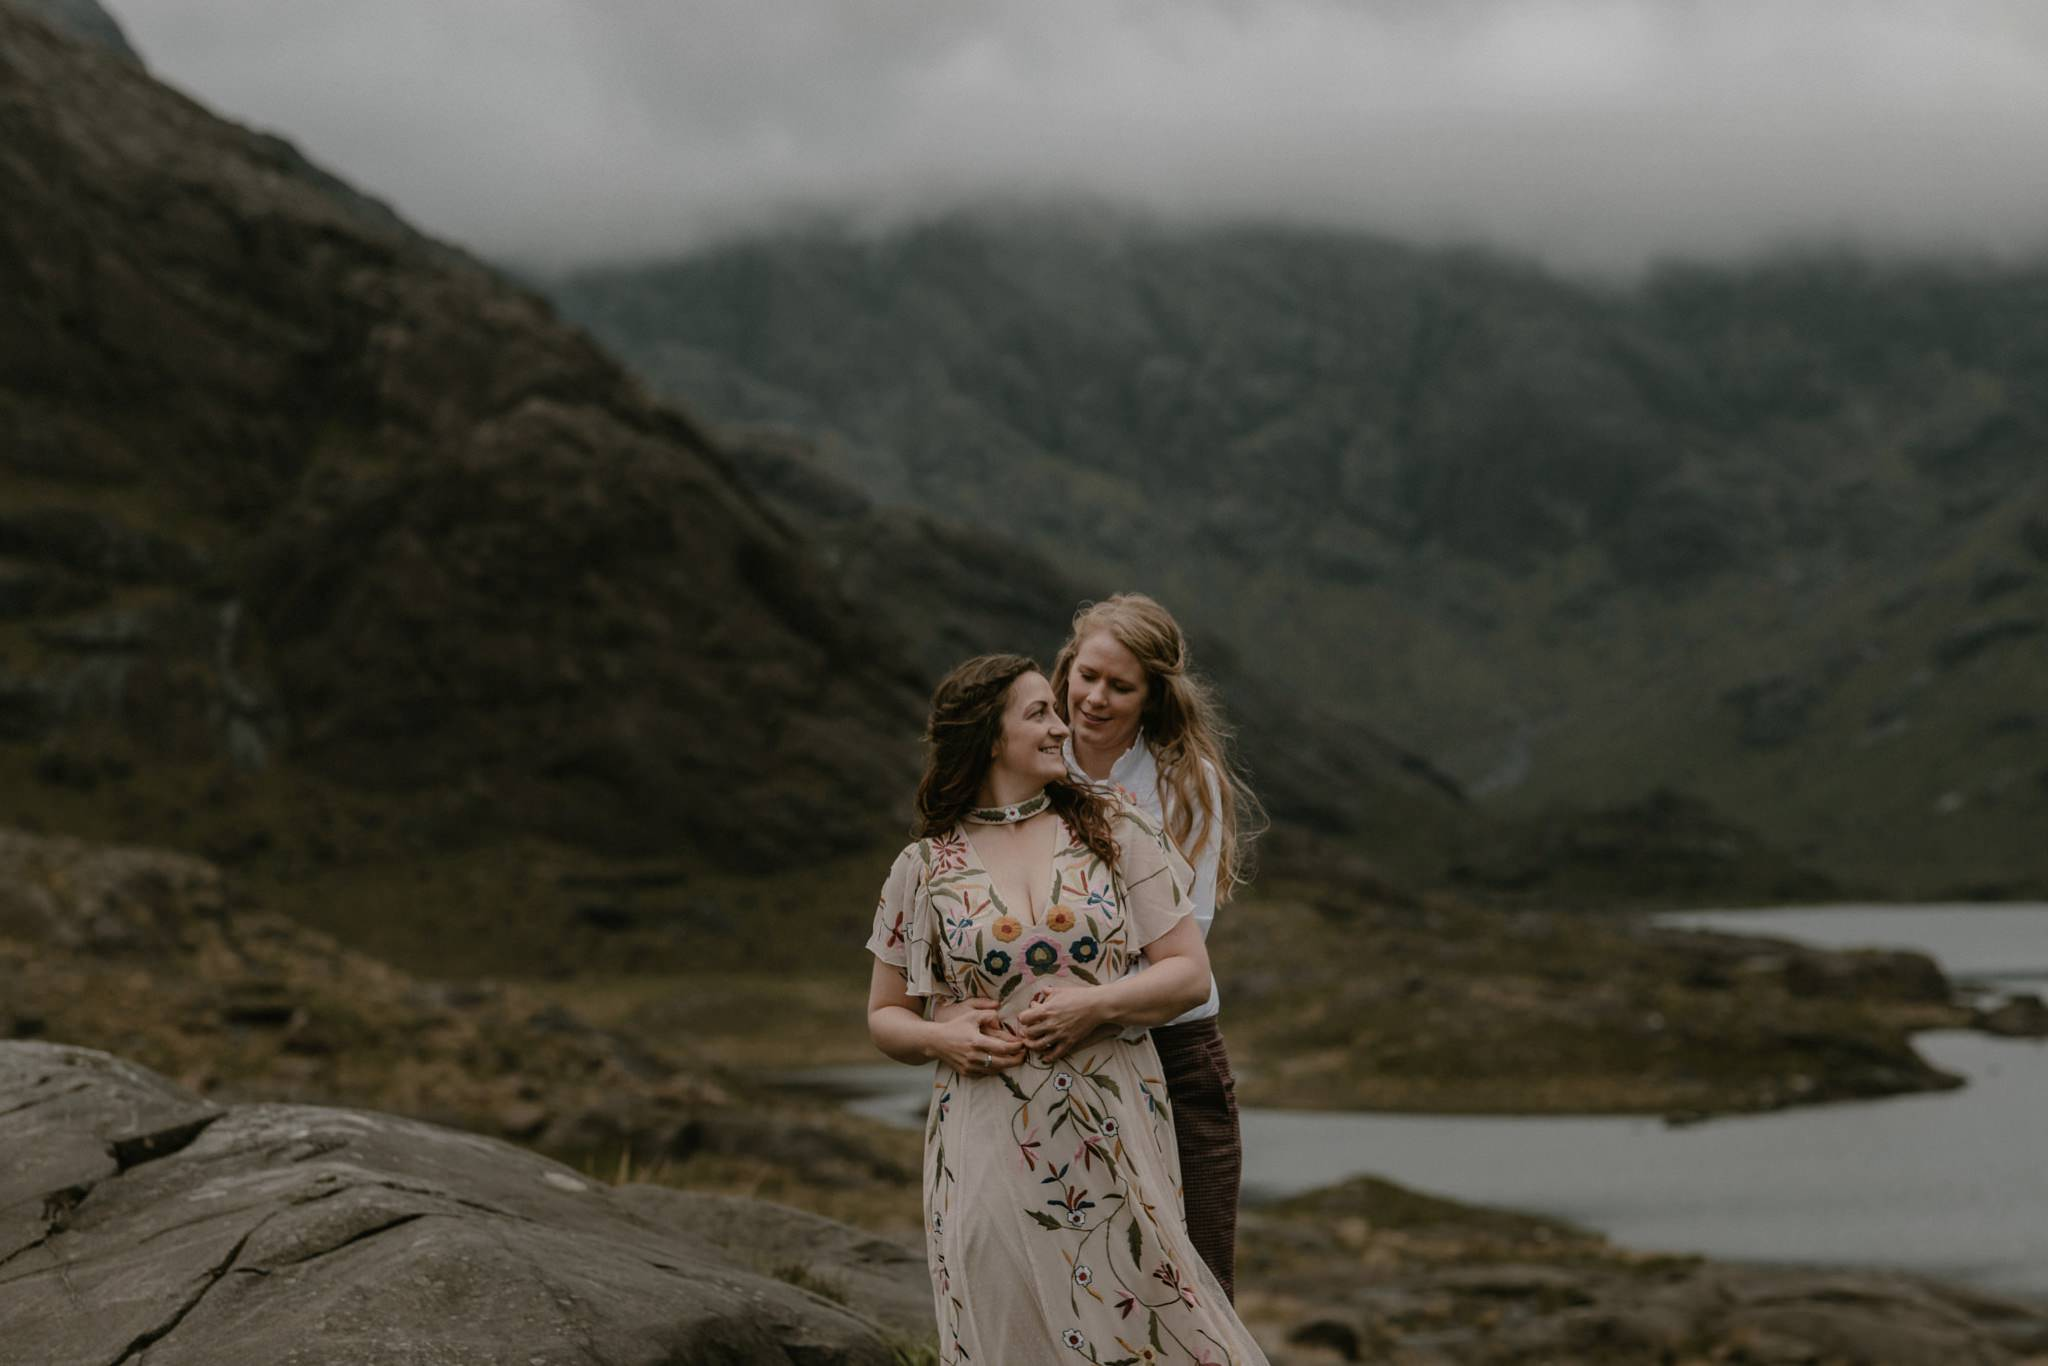 Wife and wife embracing on the shores of Loch Coruisk on the Isle of Skye